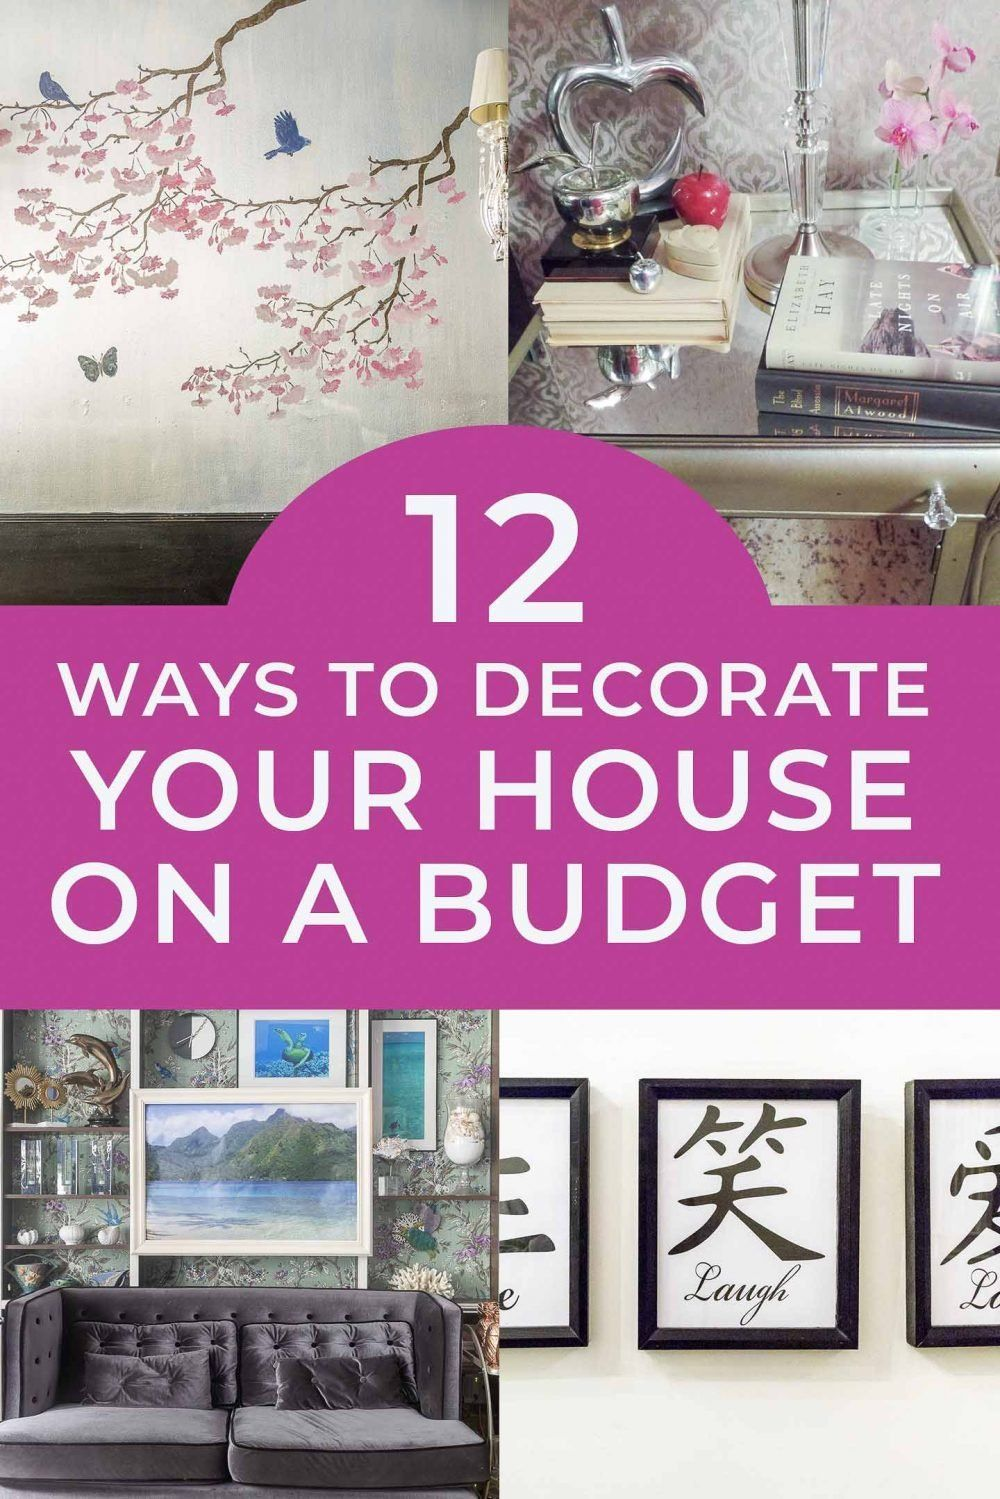 12 Ways To Decorate Your Home On A Budget House Decorating Themes Decorating Your Home Interior Decorating Tips